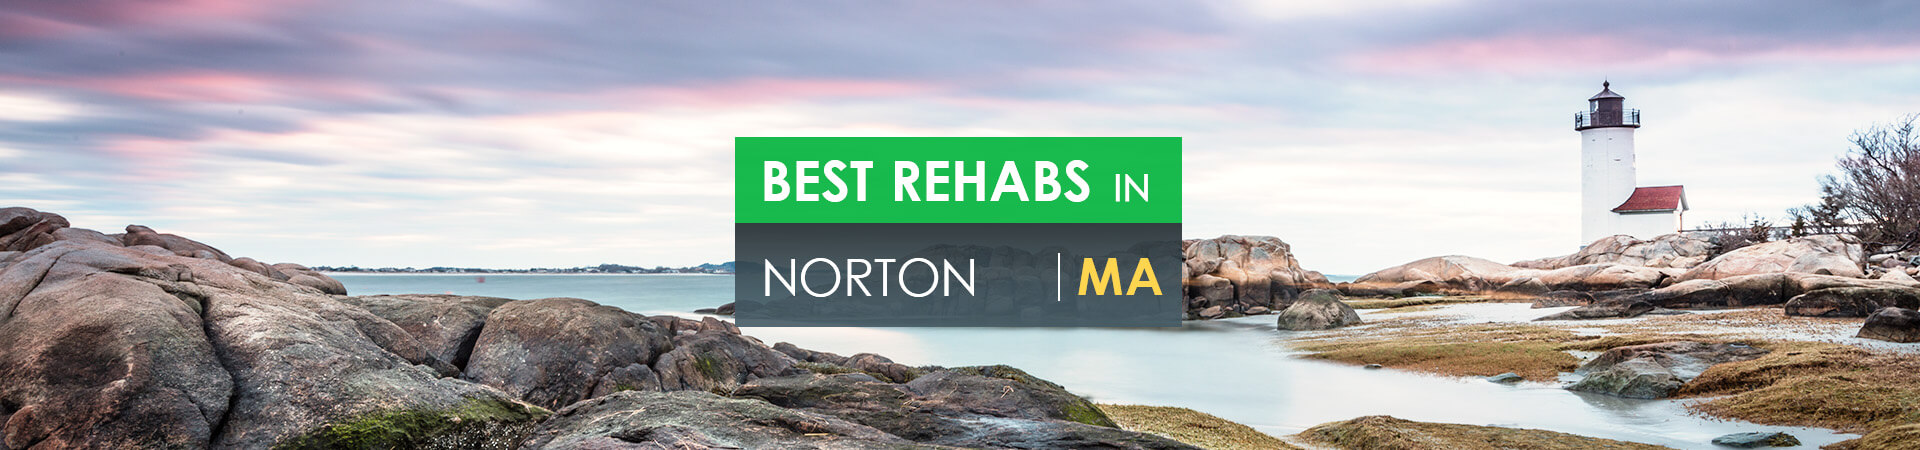 Best rehabs in Norton, MA